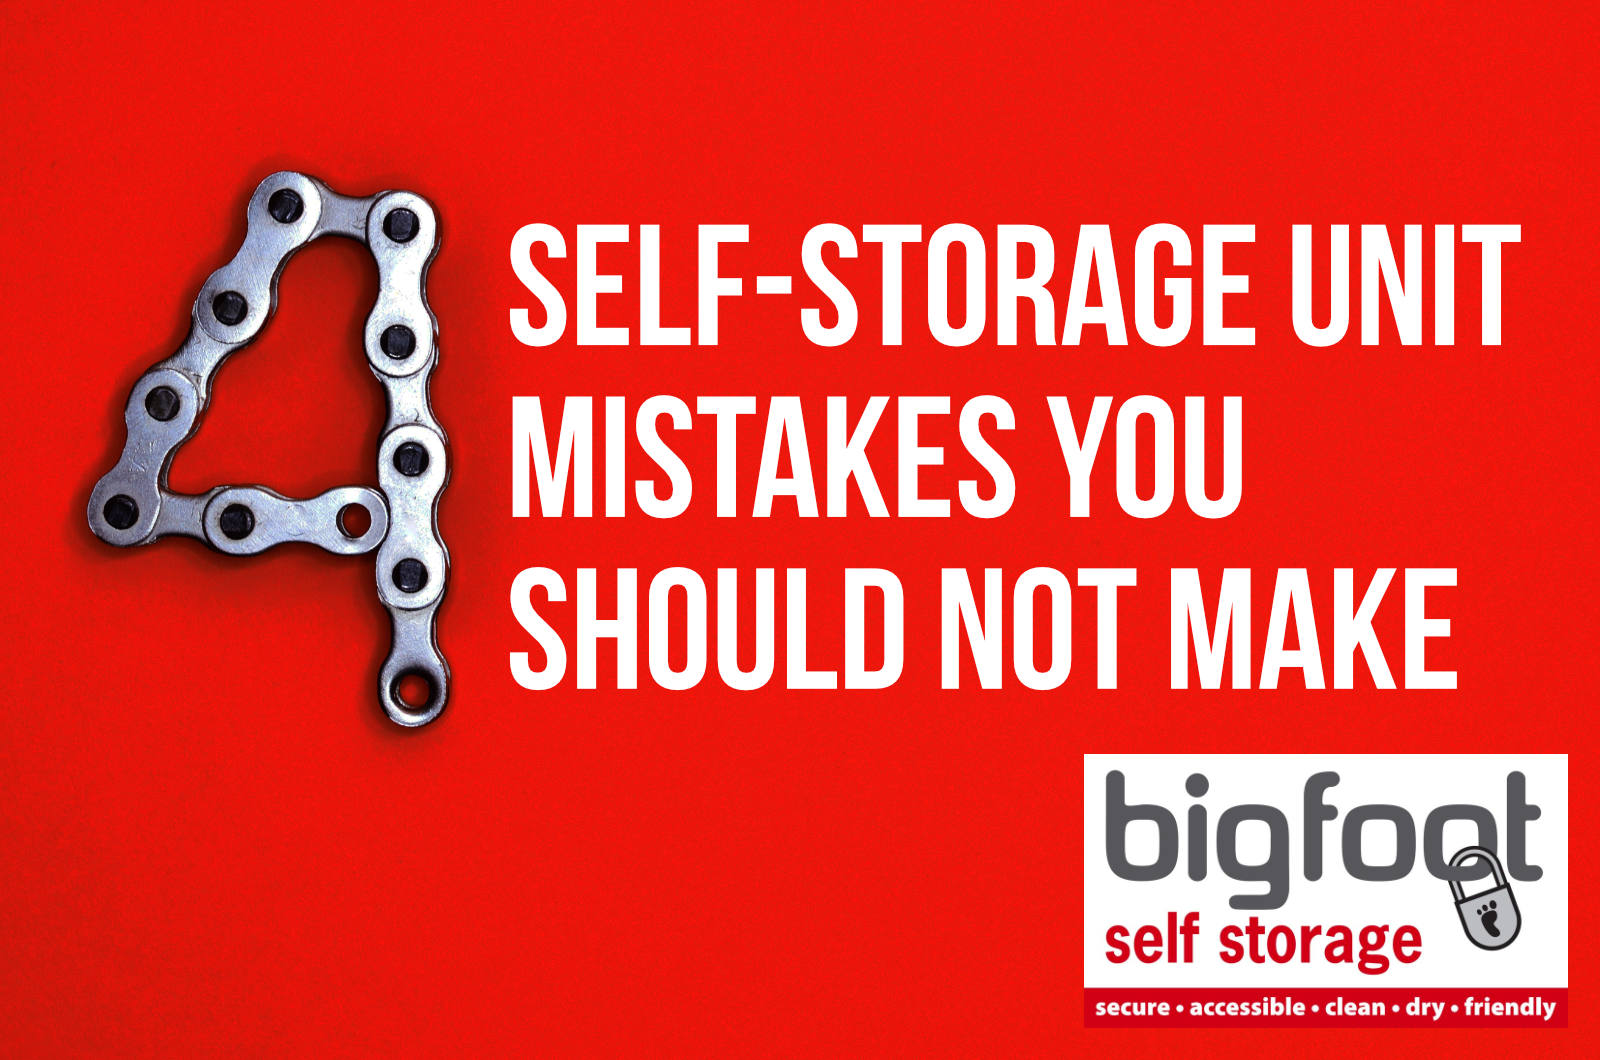 Self storage mistakes you should not make